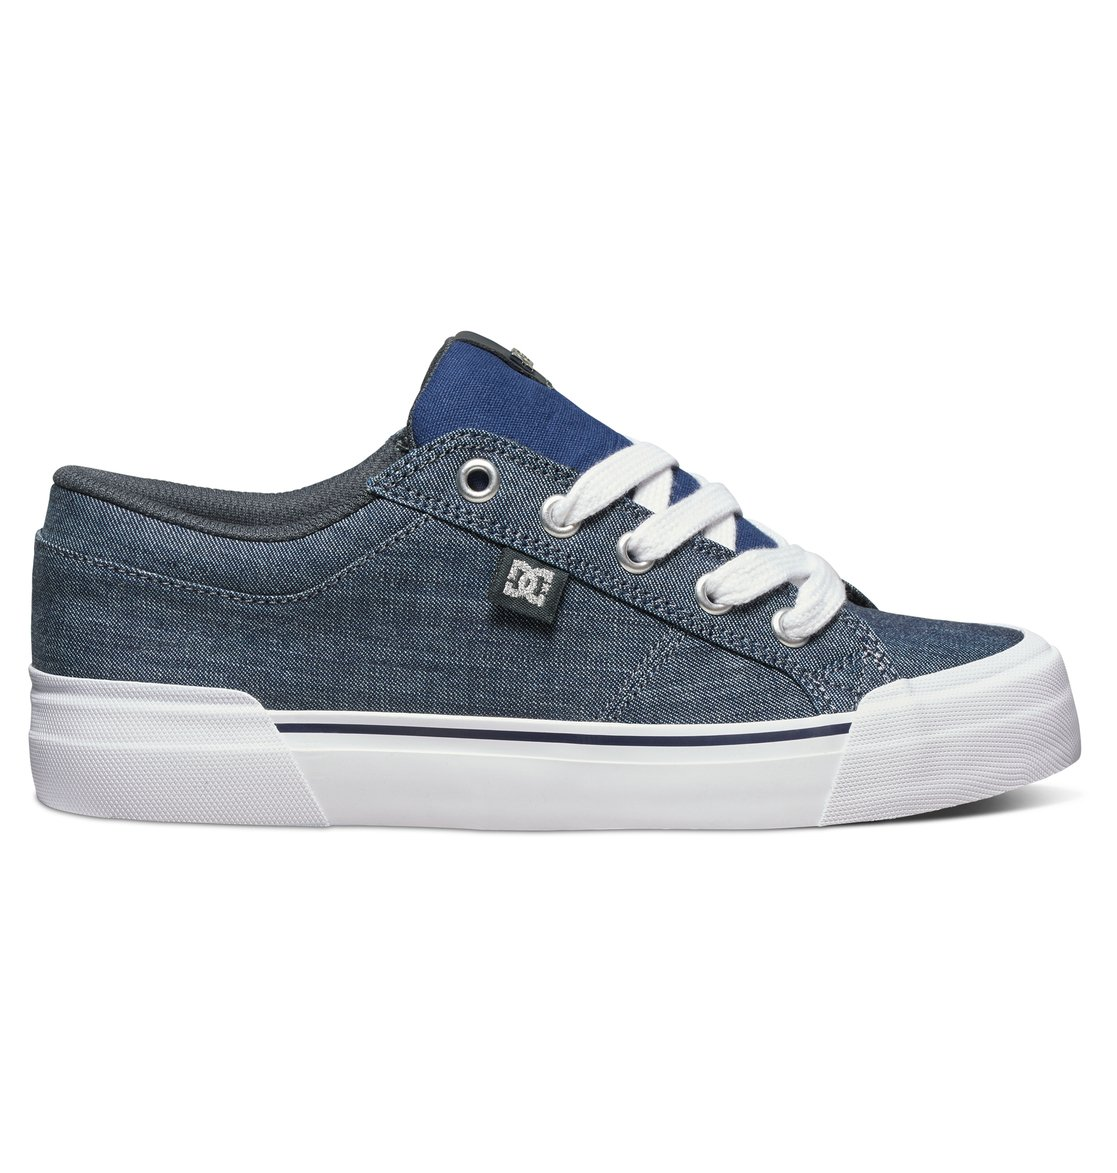 Cool Description  See The Future Of Skate Style With The DC Cleo Shoes These Shoes Come In A Slim Textile Upper With Metal Eyelets And Brand Detailing Vent Holes Lend Breathability While A Lightly Padded Footbed Offers Cushioned Comfort DCs